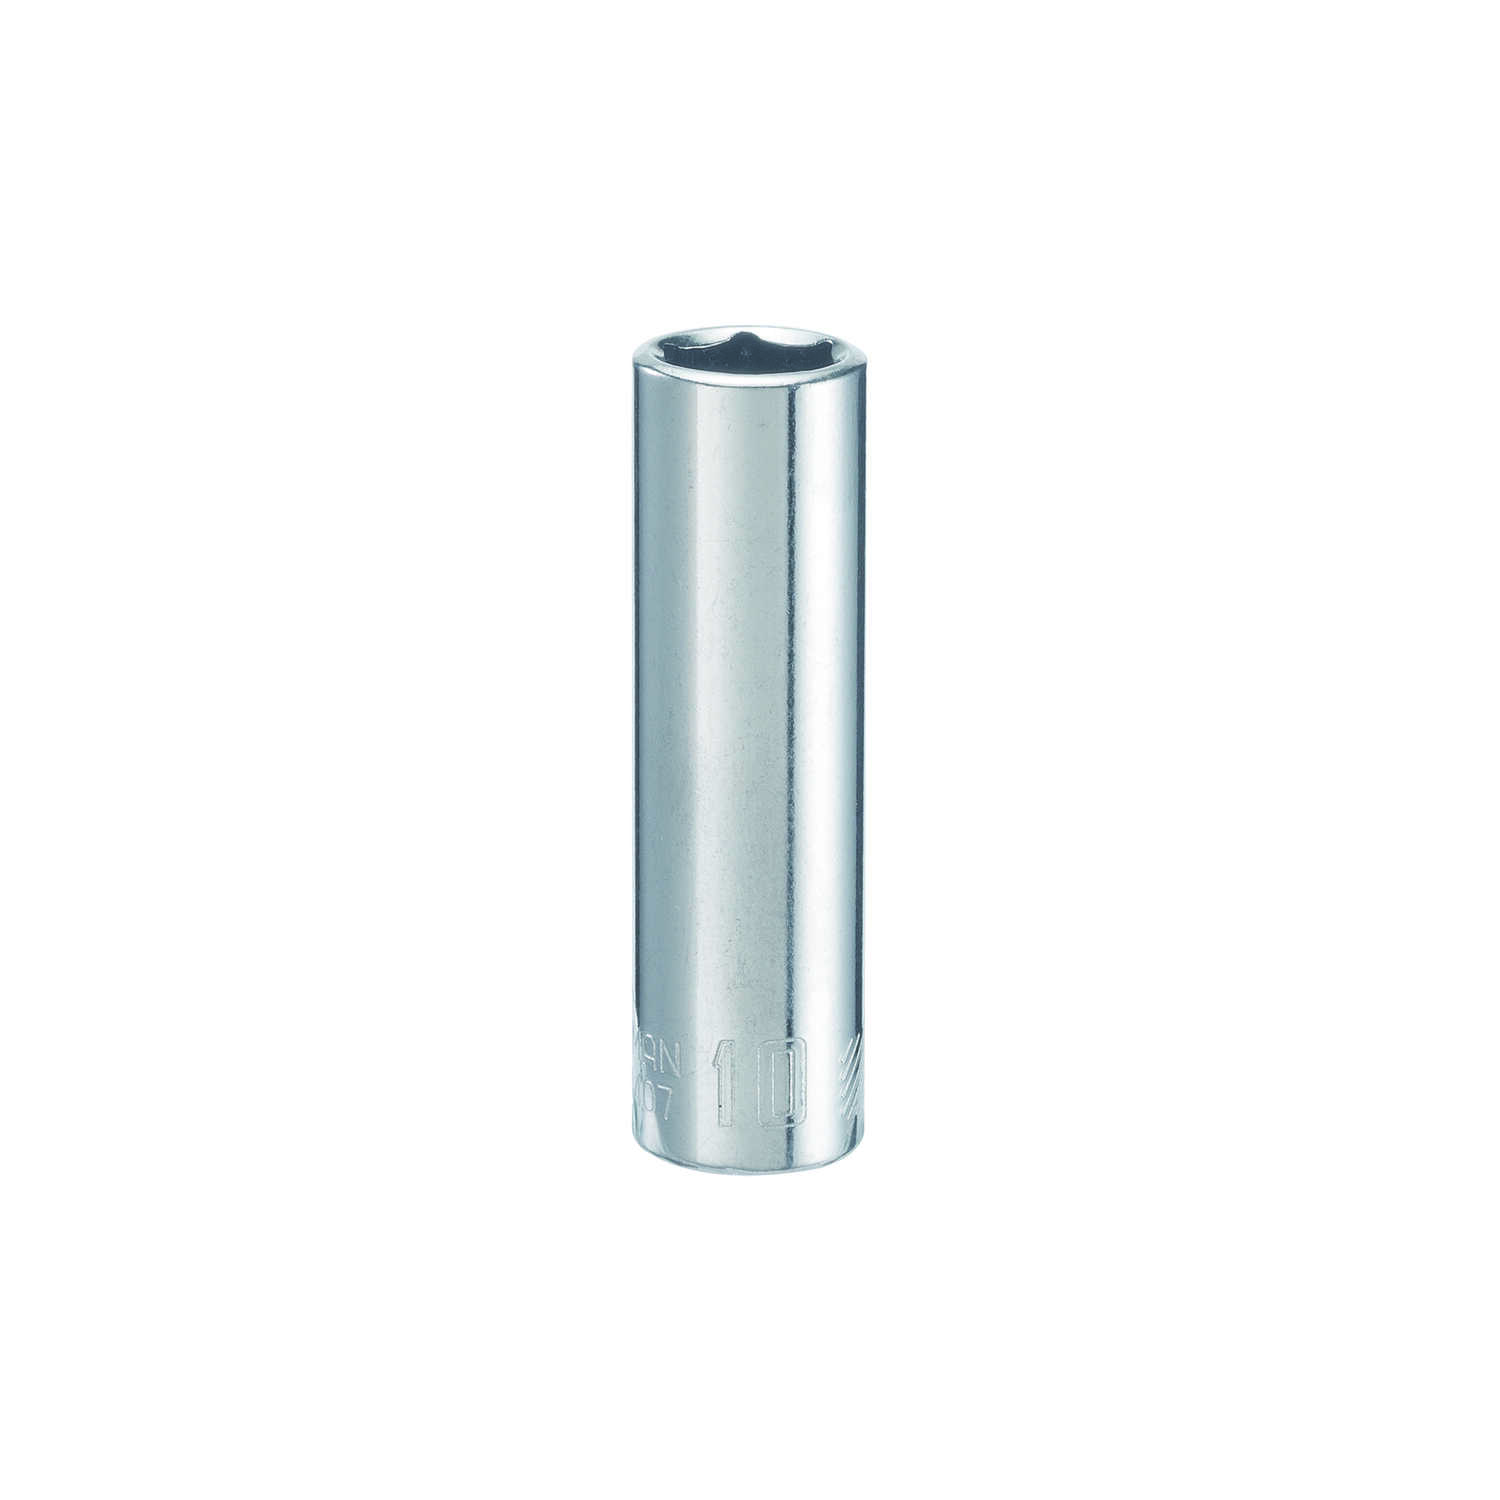 Craftsman  10 mm  x 1/4 in. drive  Metric  6 Point Deep  Socket  1 pc.